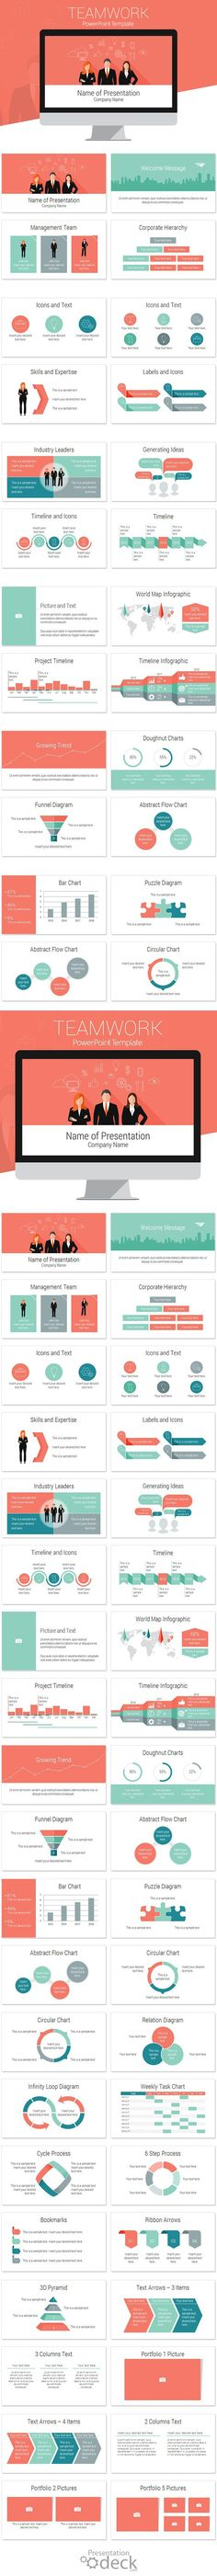 Modern Business Plan PowerPoint Template Business powerpoint - income report template